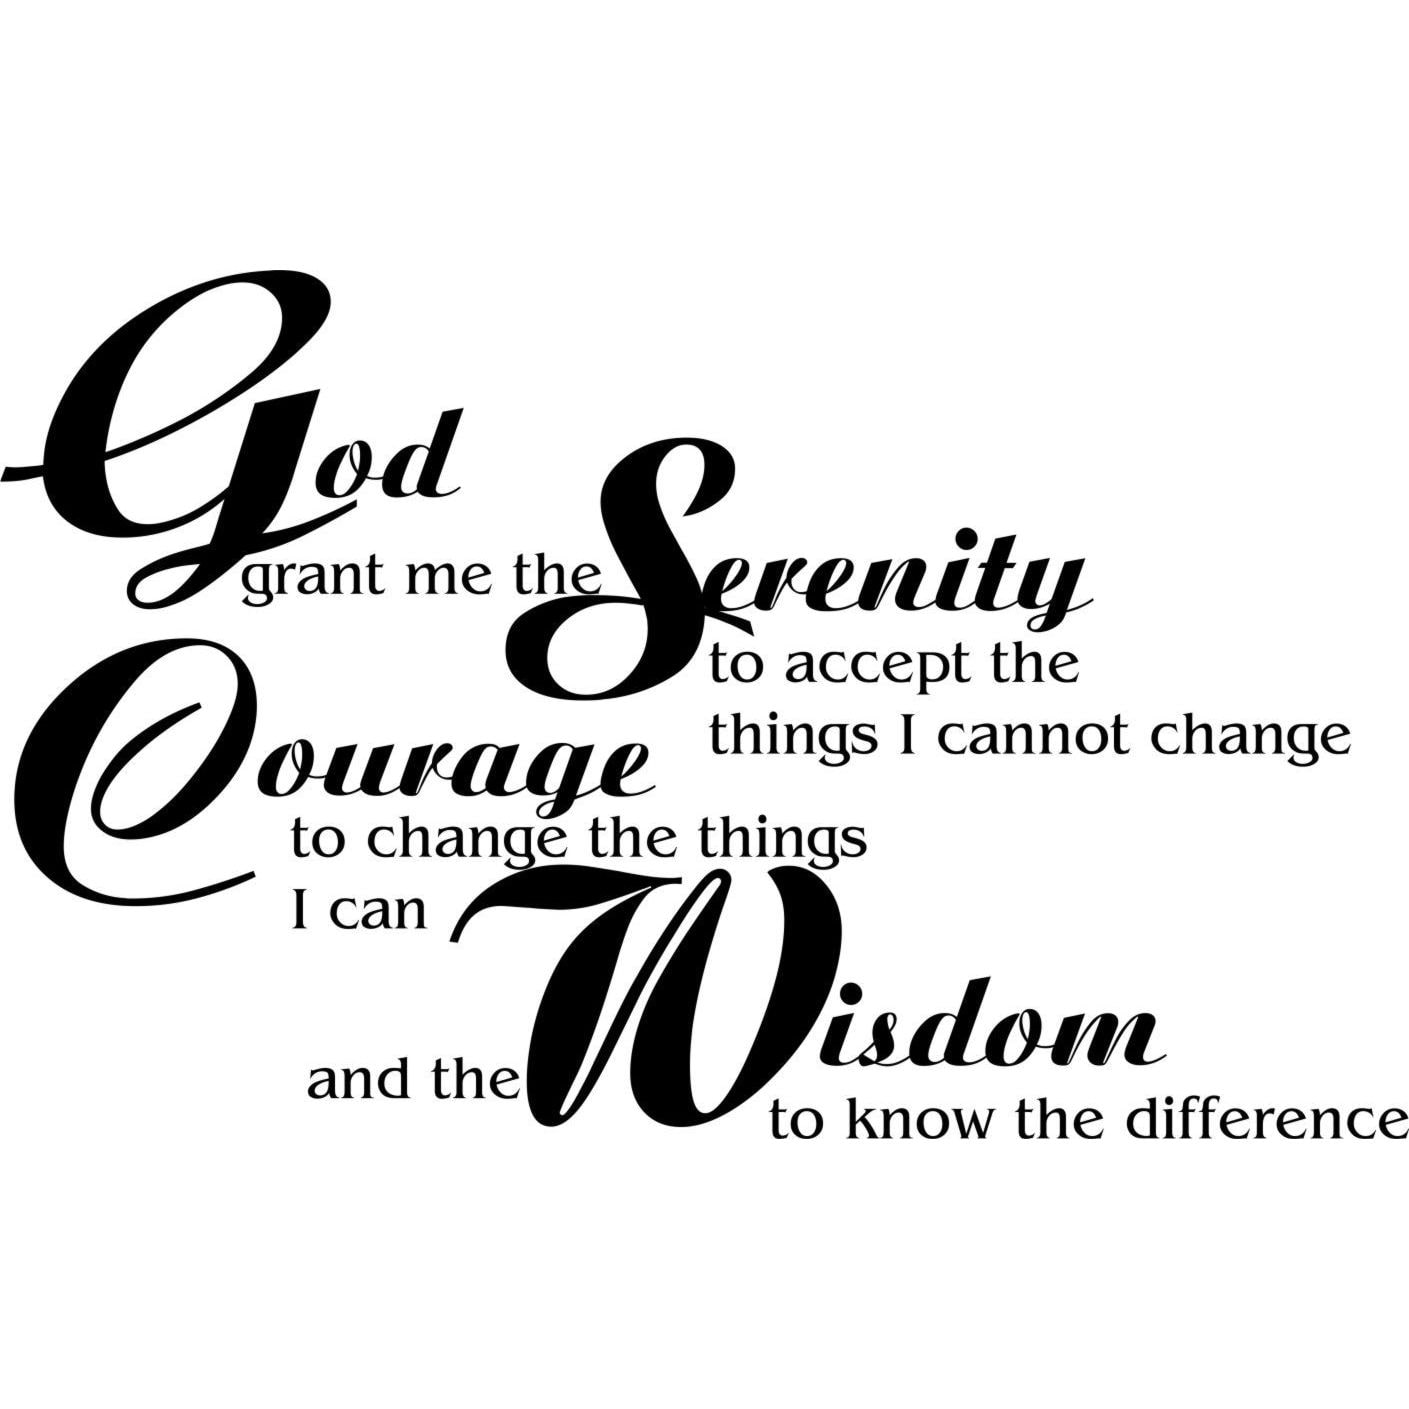 Everything Vinyl Decor Serenity Prayer Vinyl Wall Art